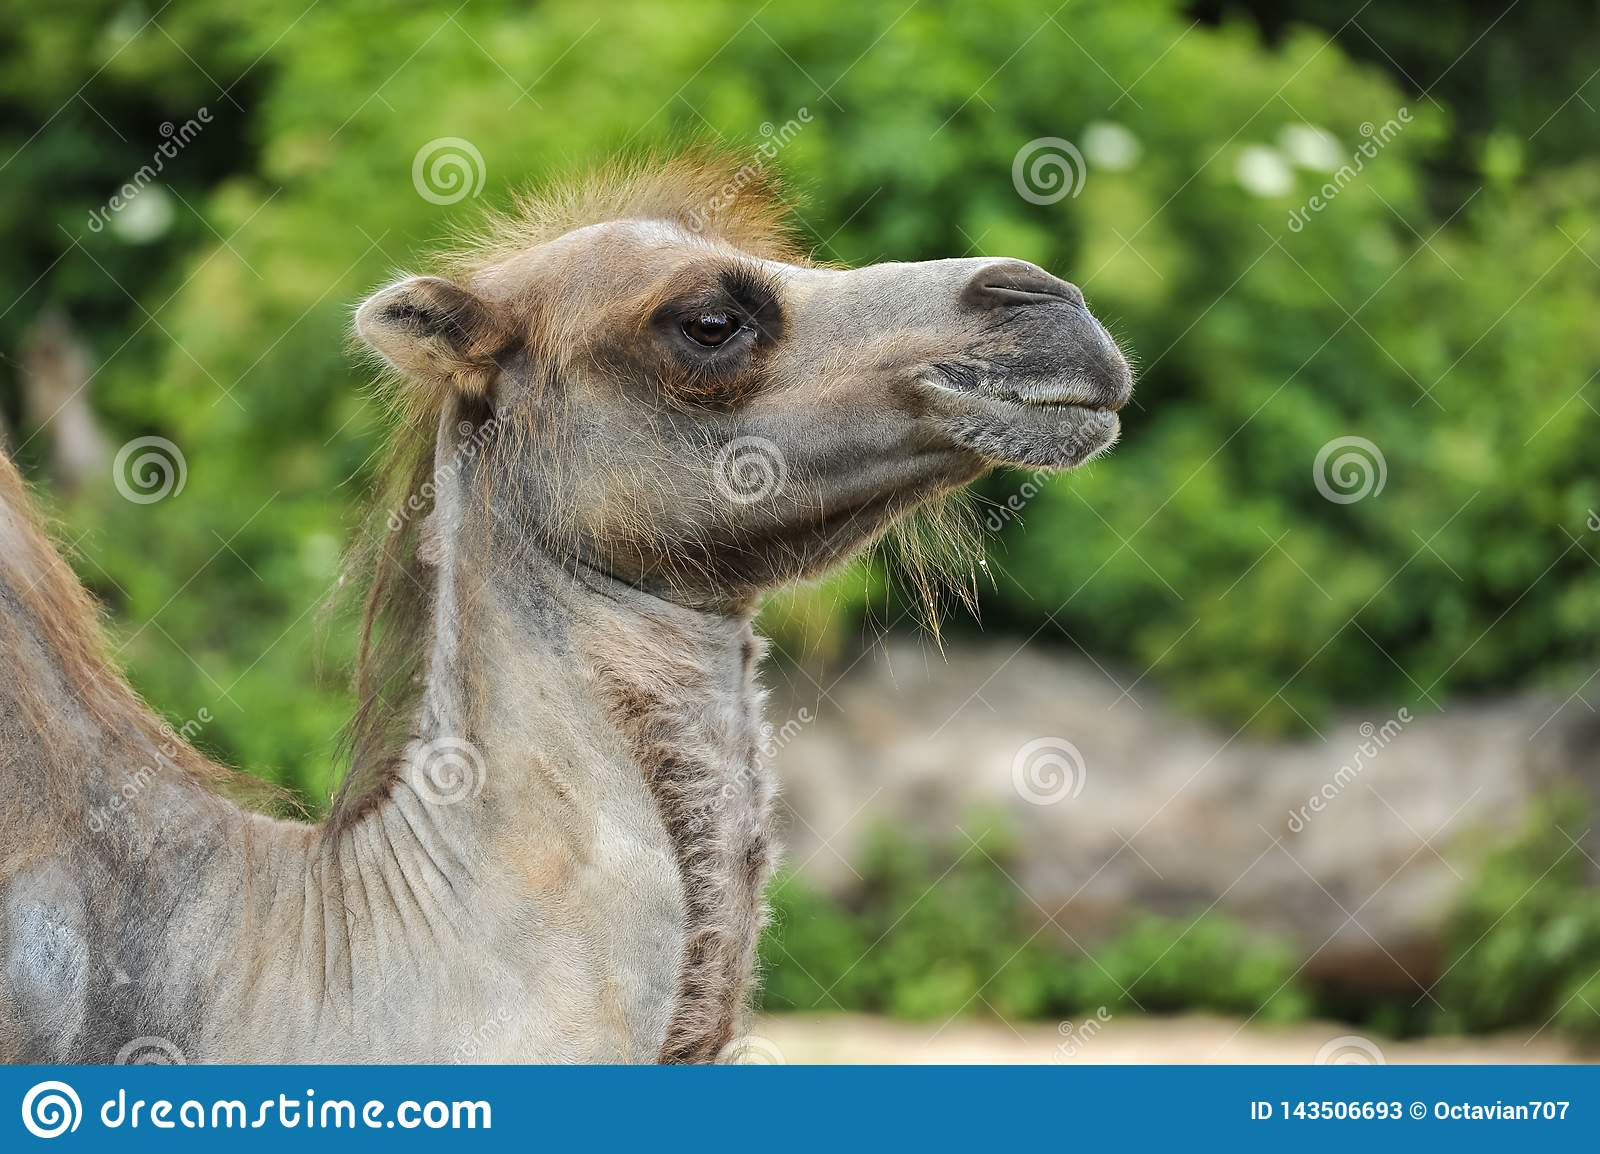 Profile of a hairy camel in green vegetation